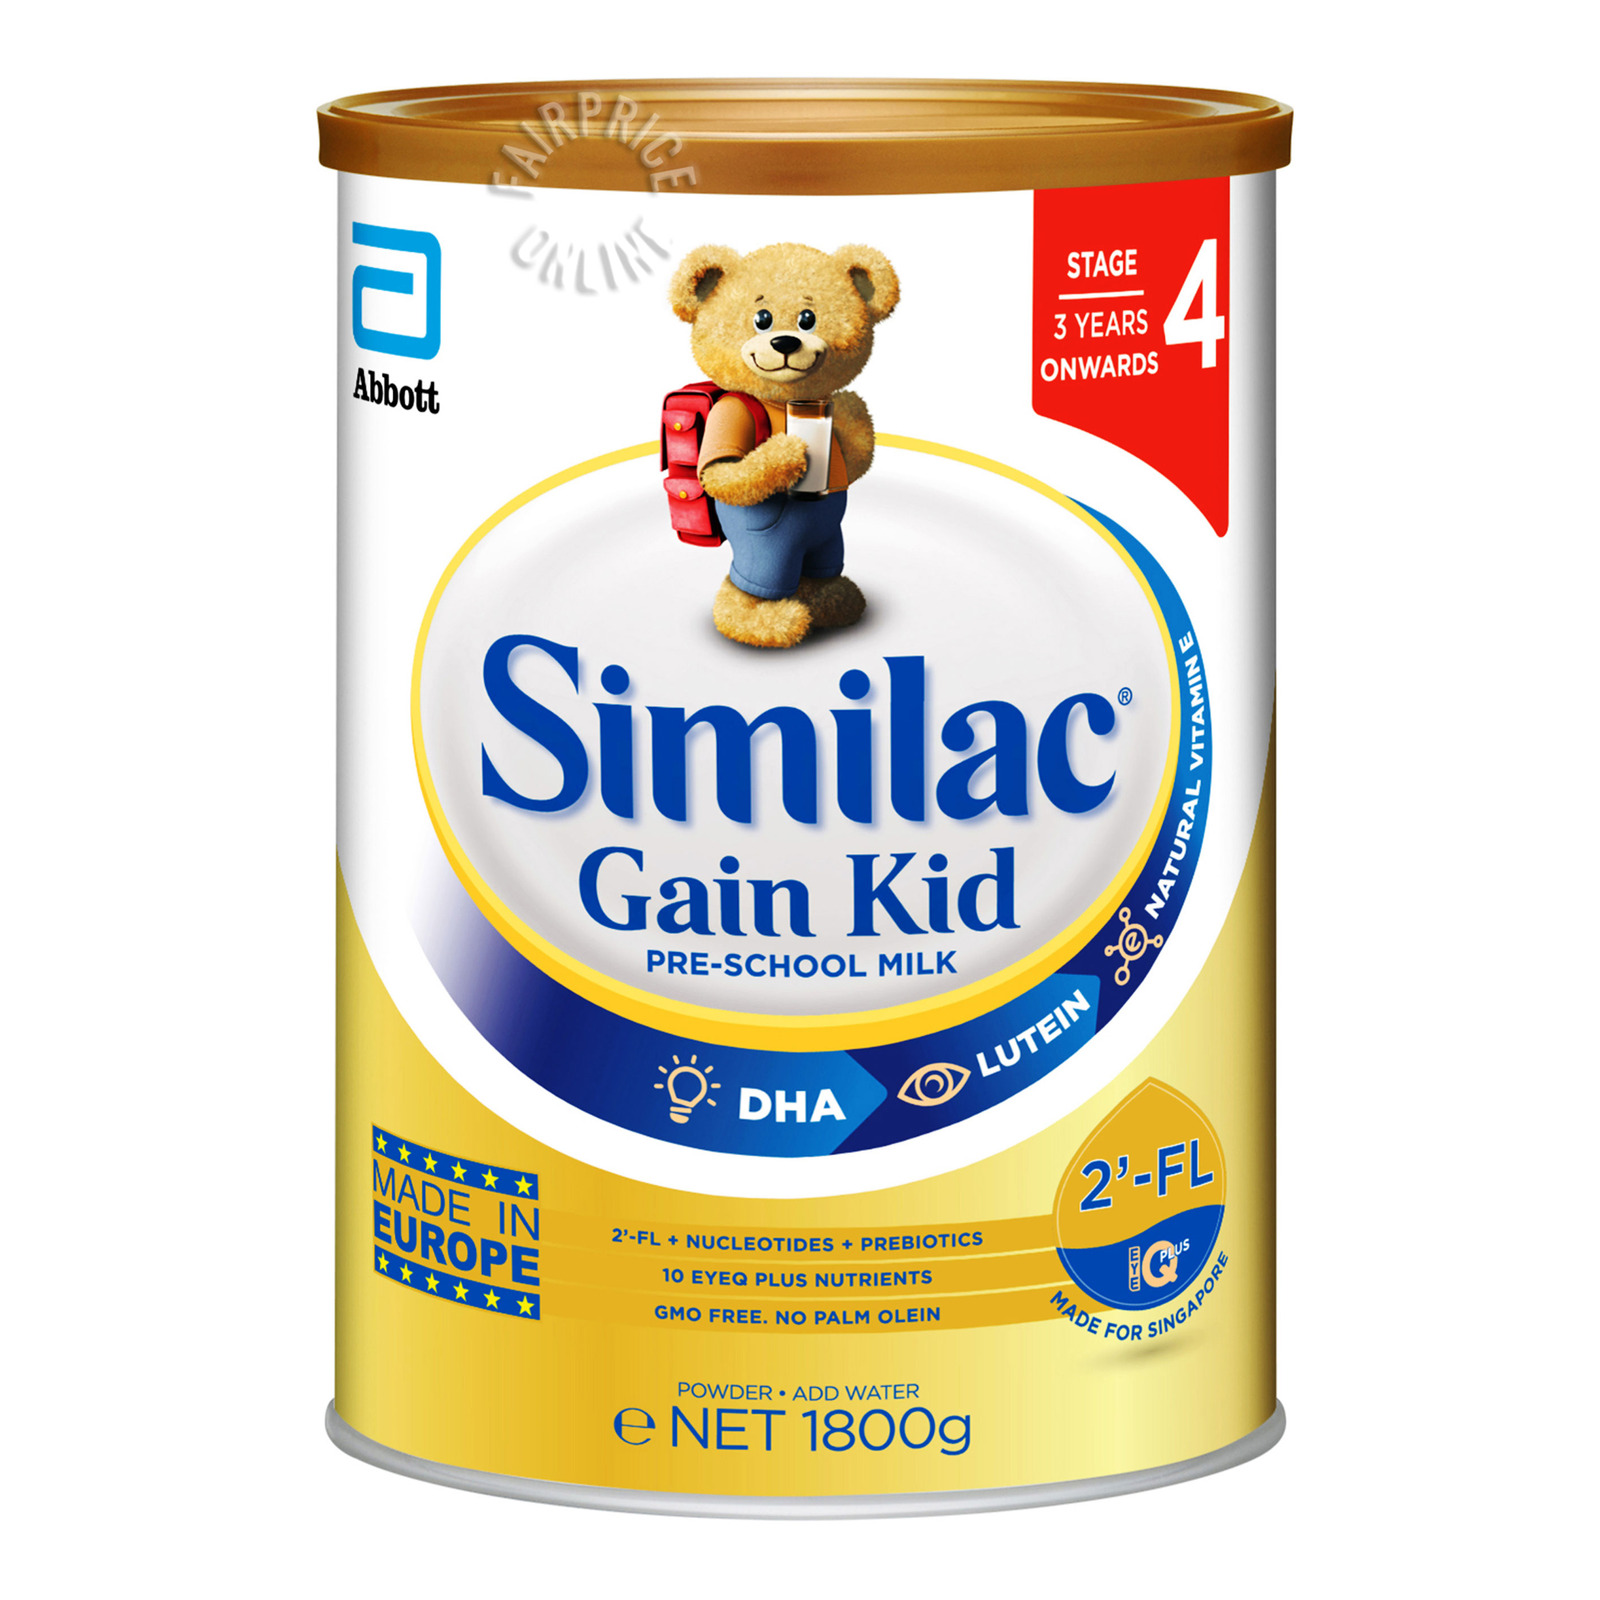 Abbott Similac Gain Kid Pre-School Milk Formula - Stage 4